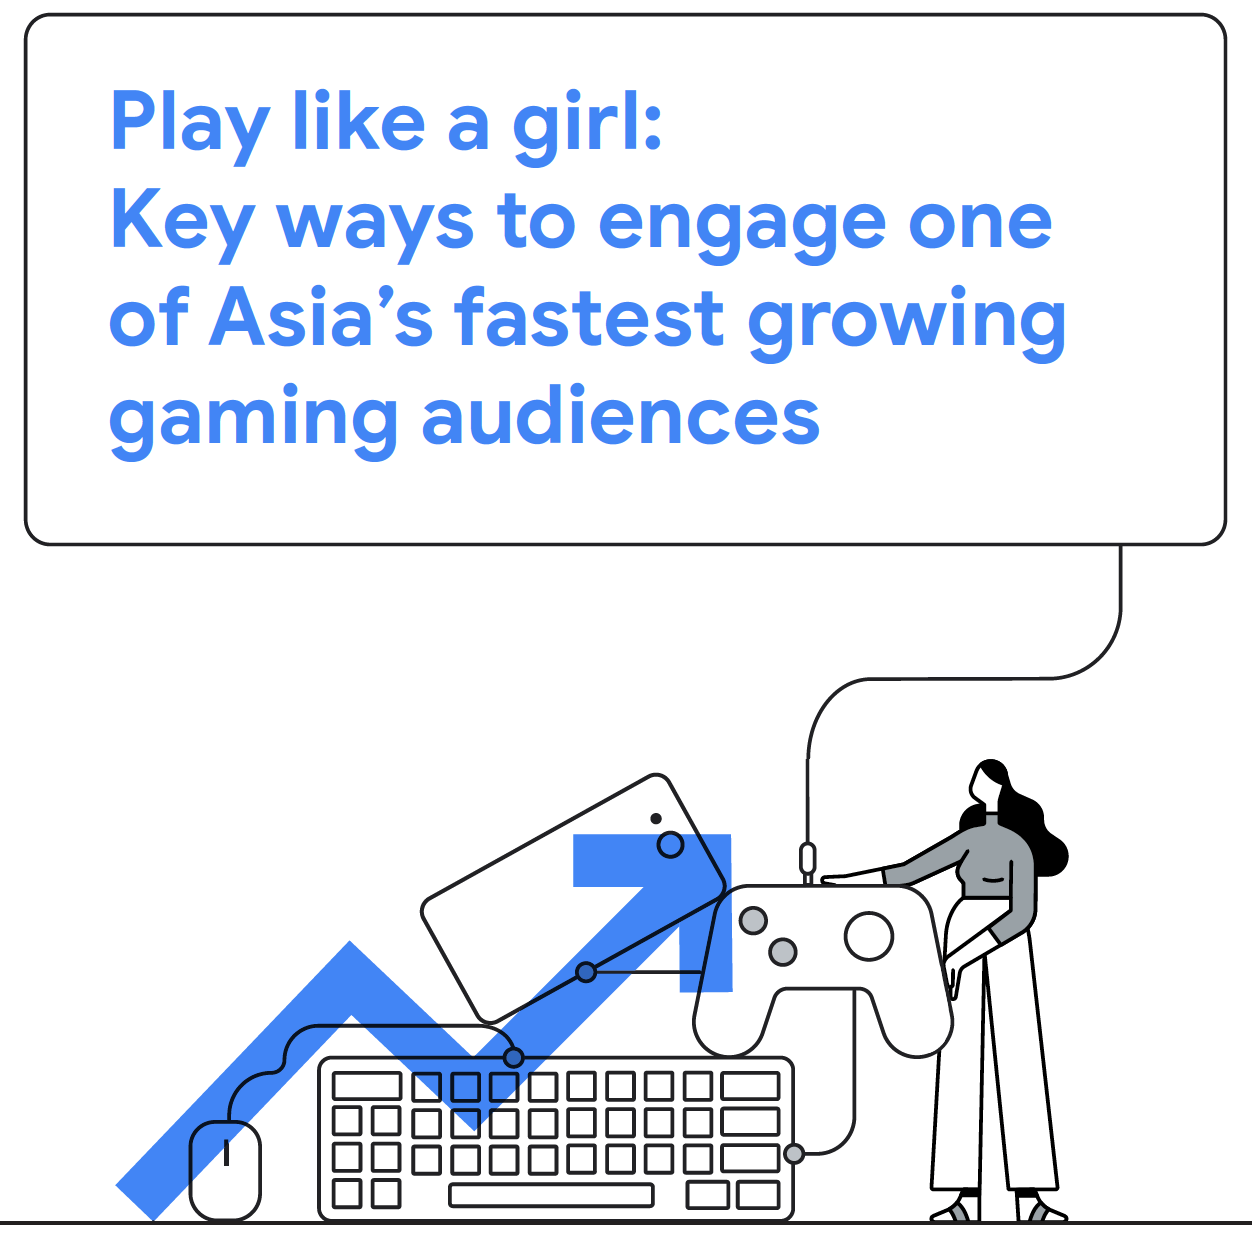 Key ways to engage one of Asia's fastest growing gaming audiences